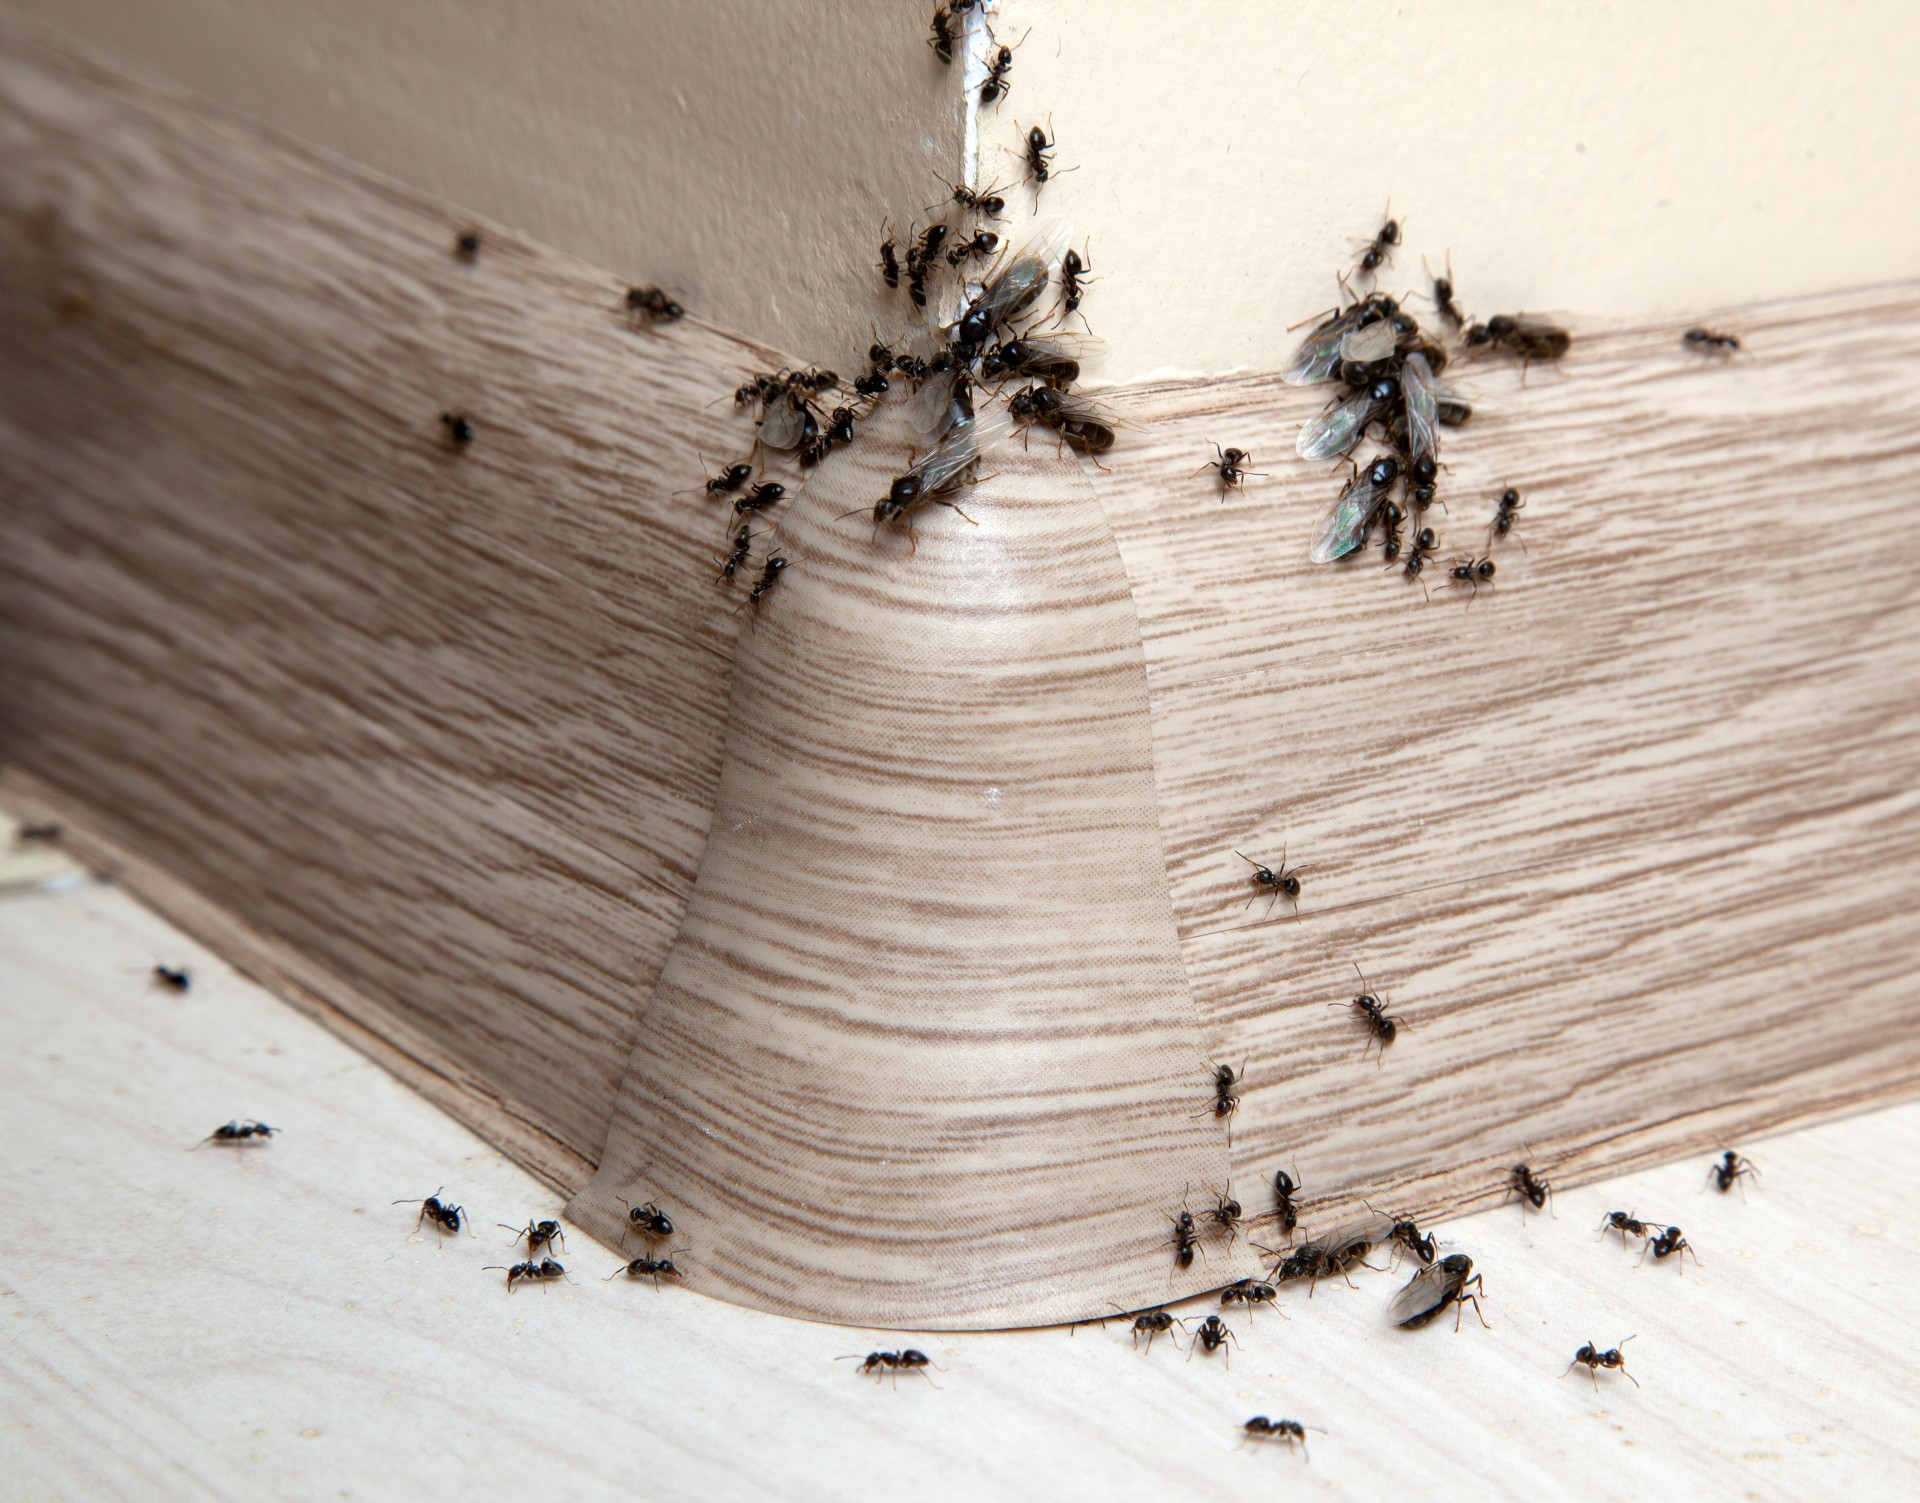 Ant Infestation, Pest Control in Ashtead, KT21. Call Now 020 8166 9746